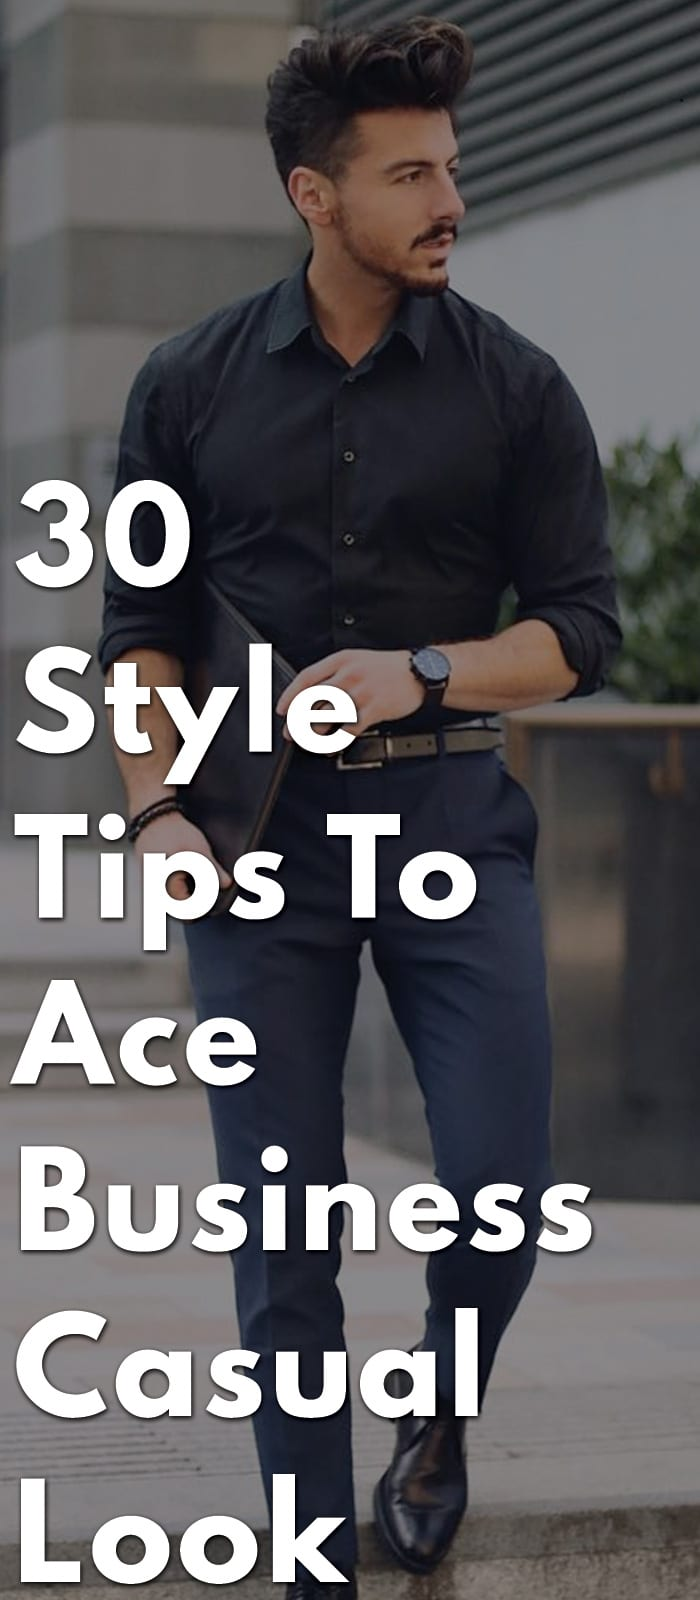 30-Style-Tips-To-Ace-Business-Casual-Look